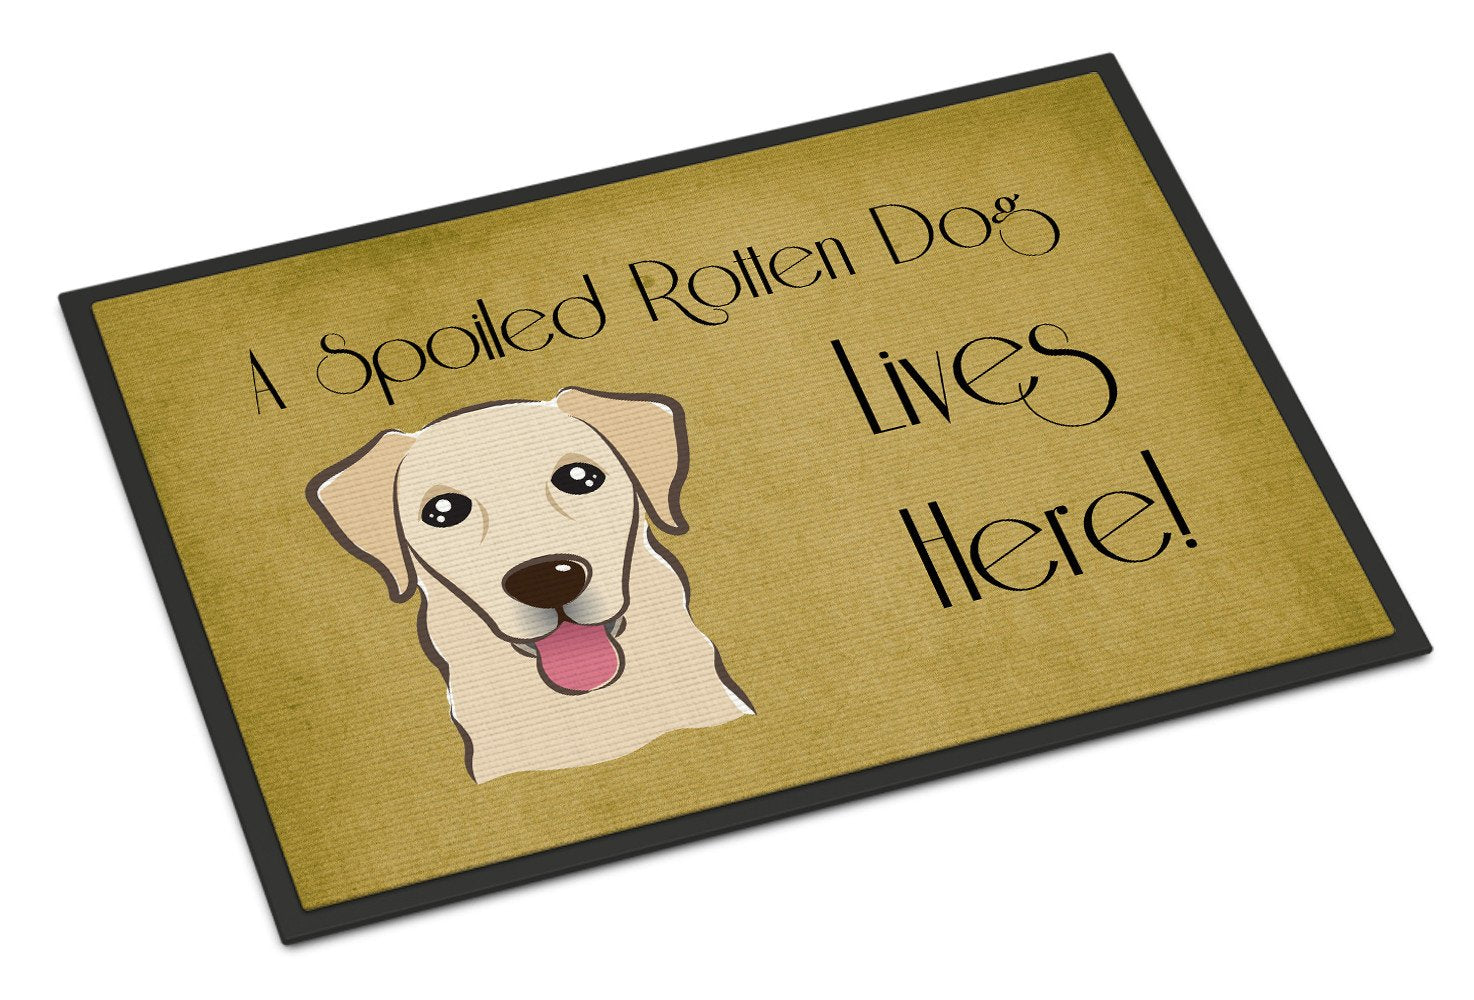 Golden Retriever Spoiled Dog Lives Here Indoor or Outdoor Mat 18x27 BB1500MAT - the-store.com